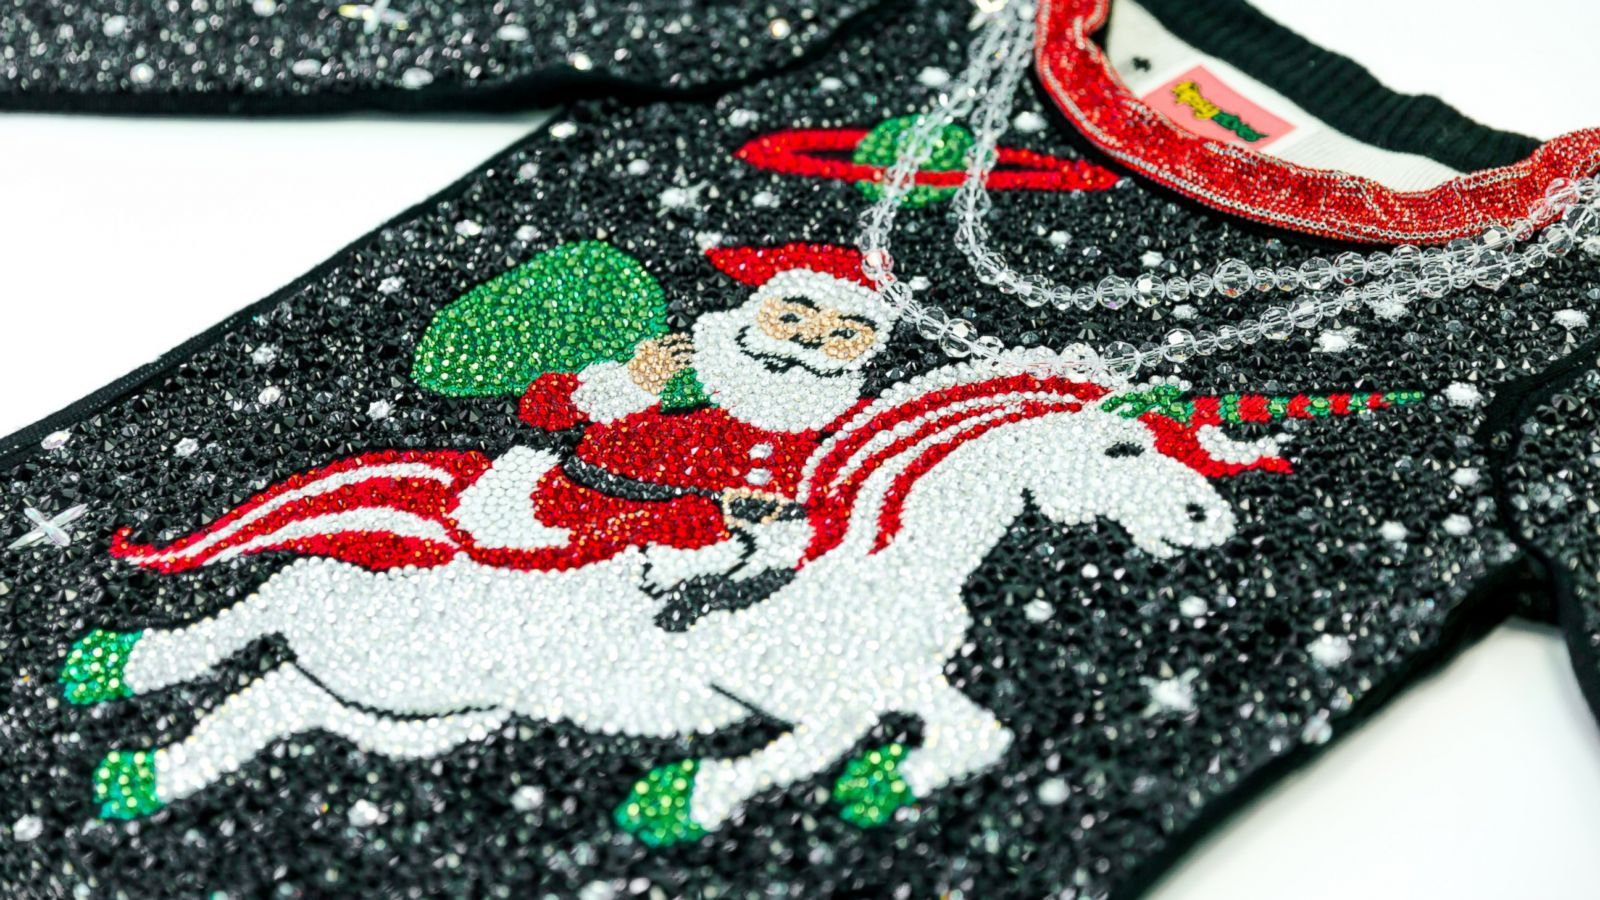 This Ugly Christmas Sweater Costs $30K - ABC News